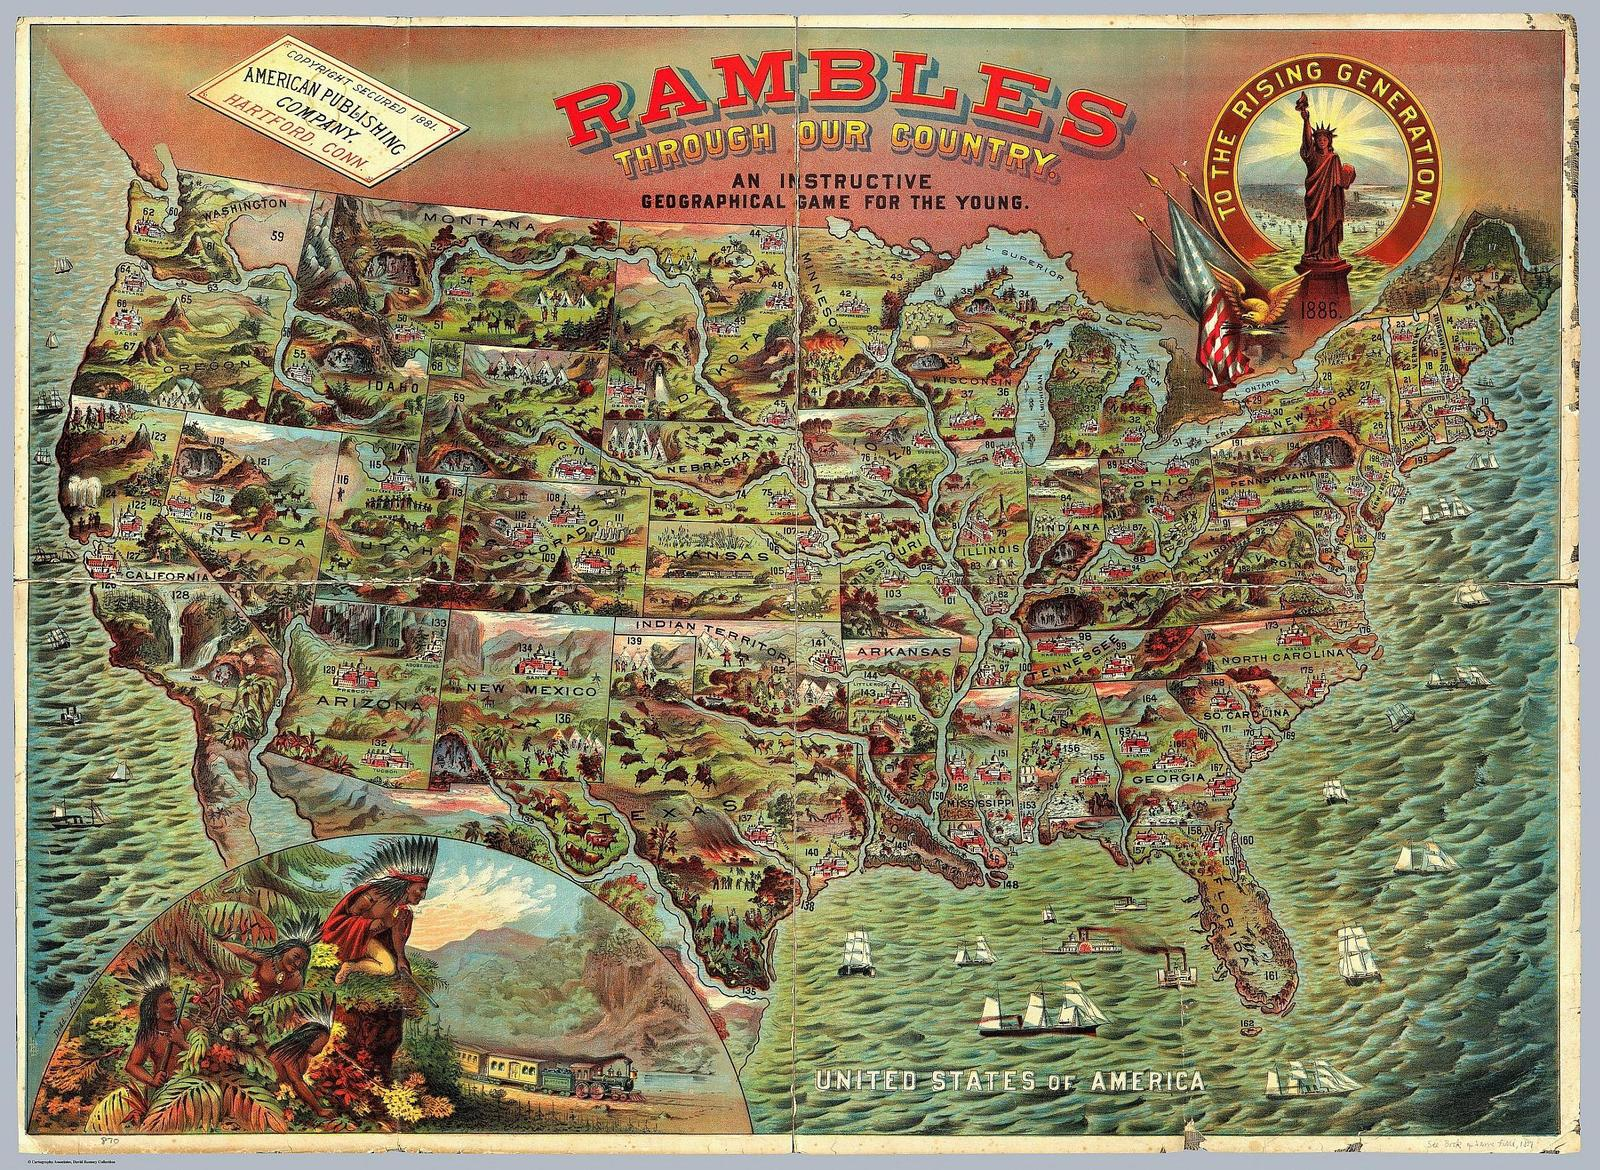 Rambles Through Our Country - An Instructive Geographical Game for the Young (1886)